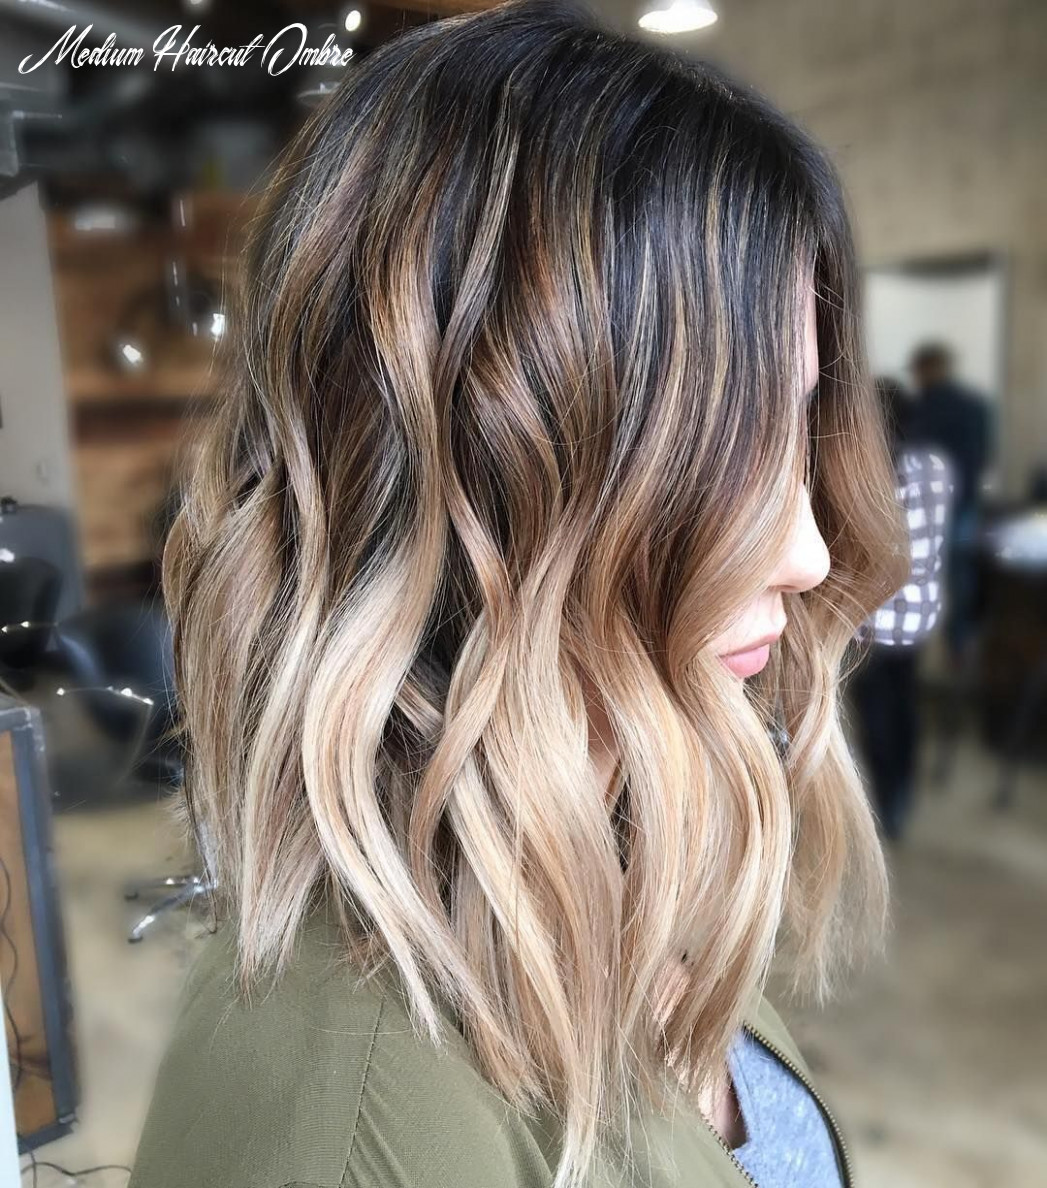 11 balayage ombre hair styles for shoulder length hair, women